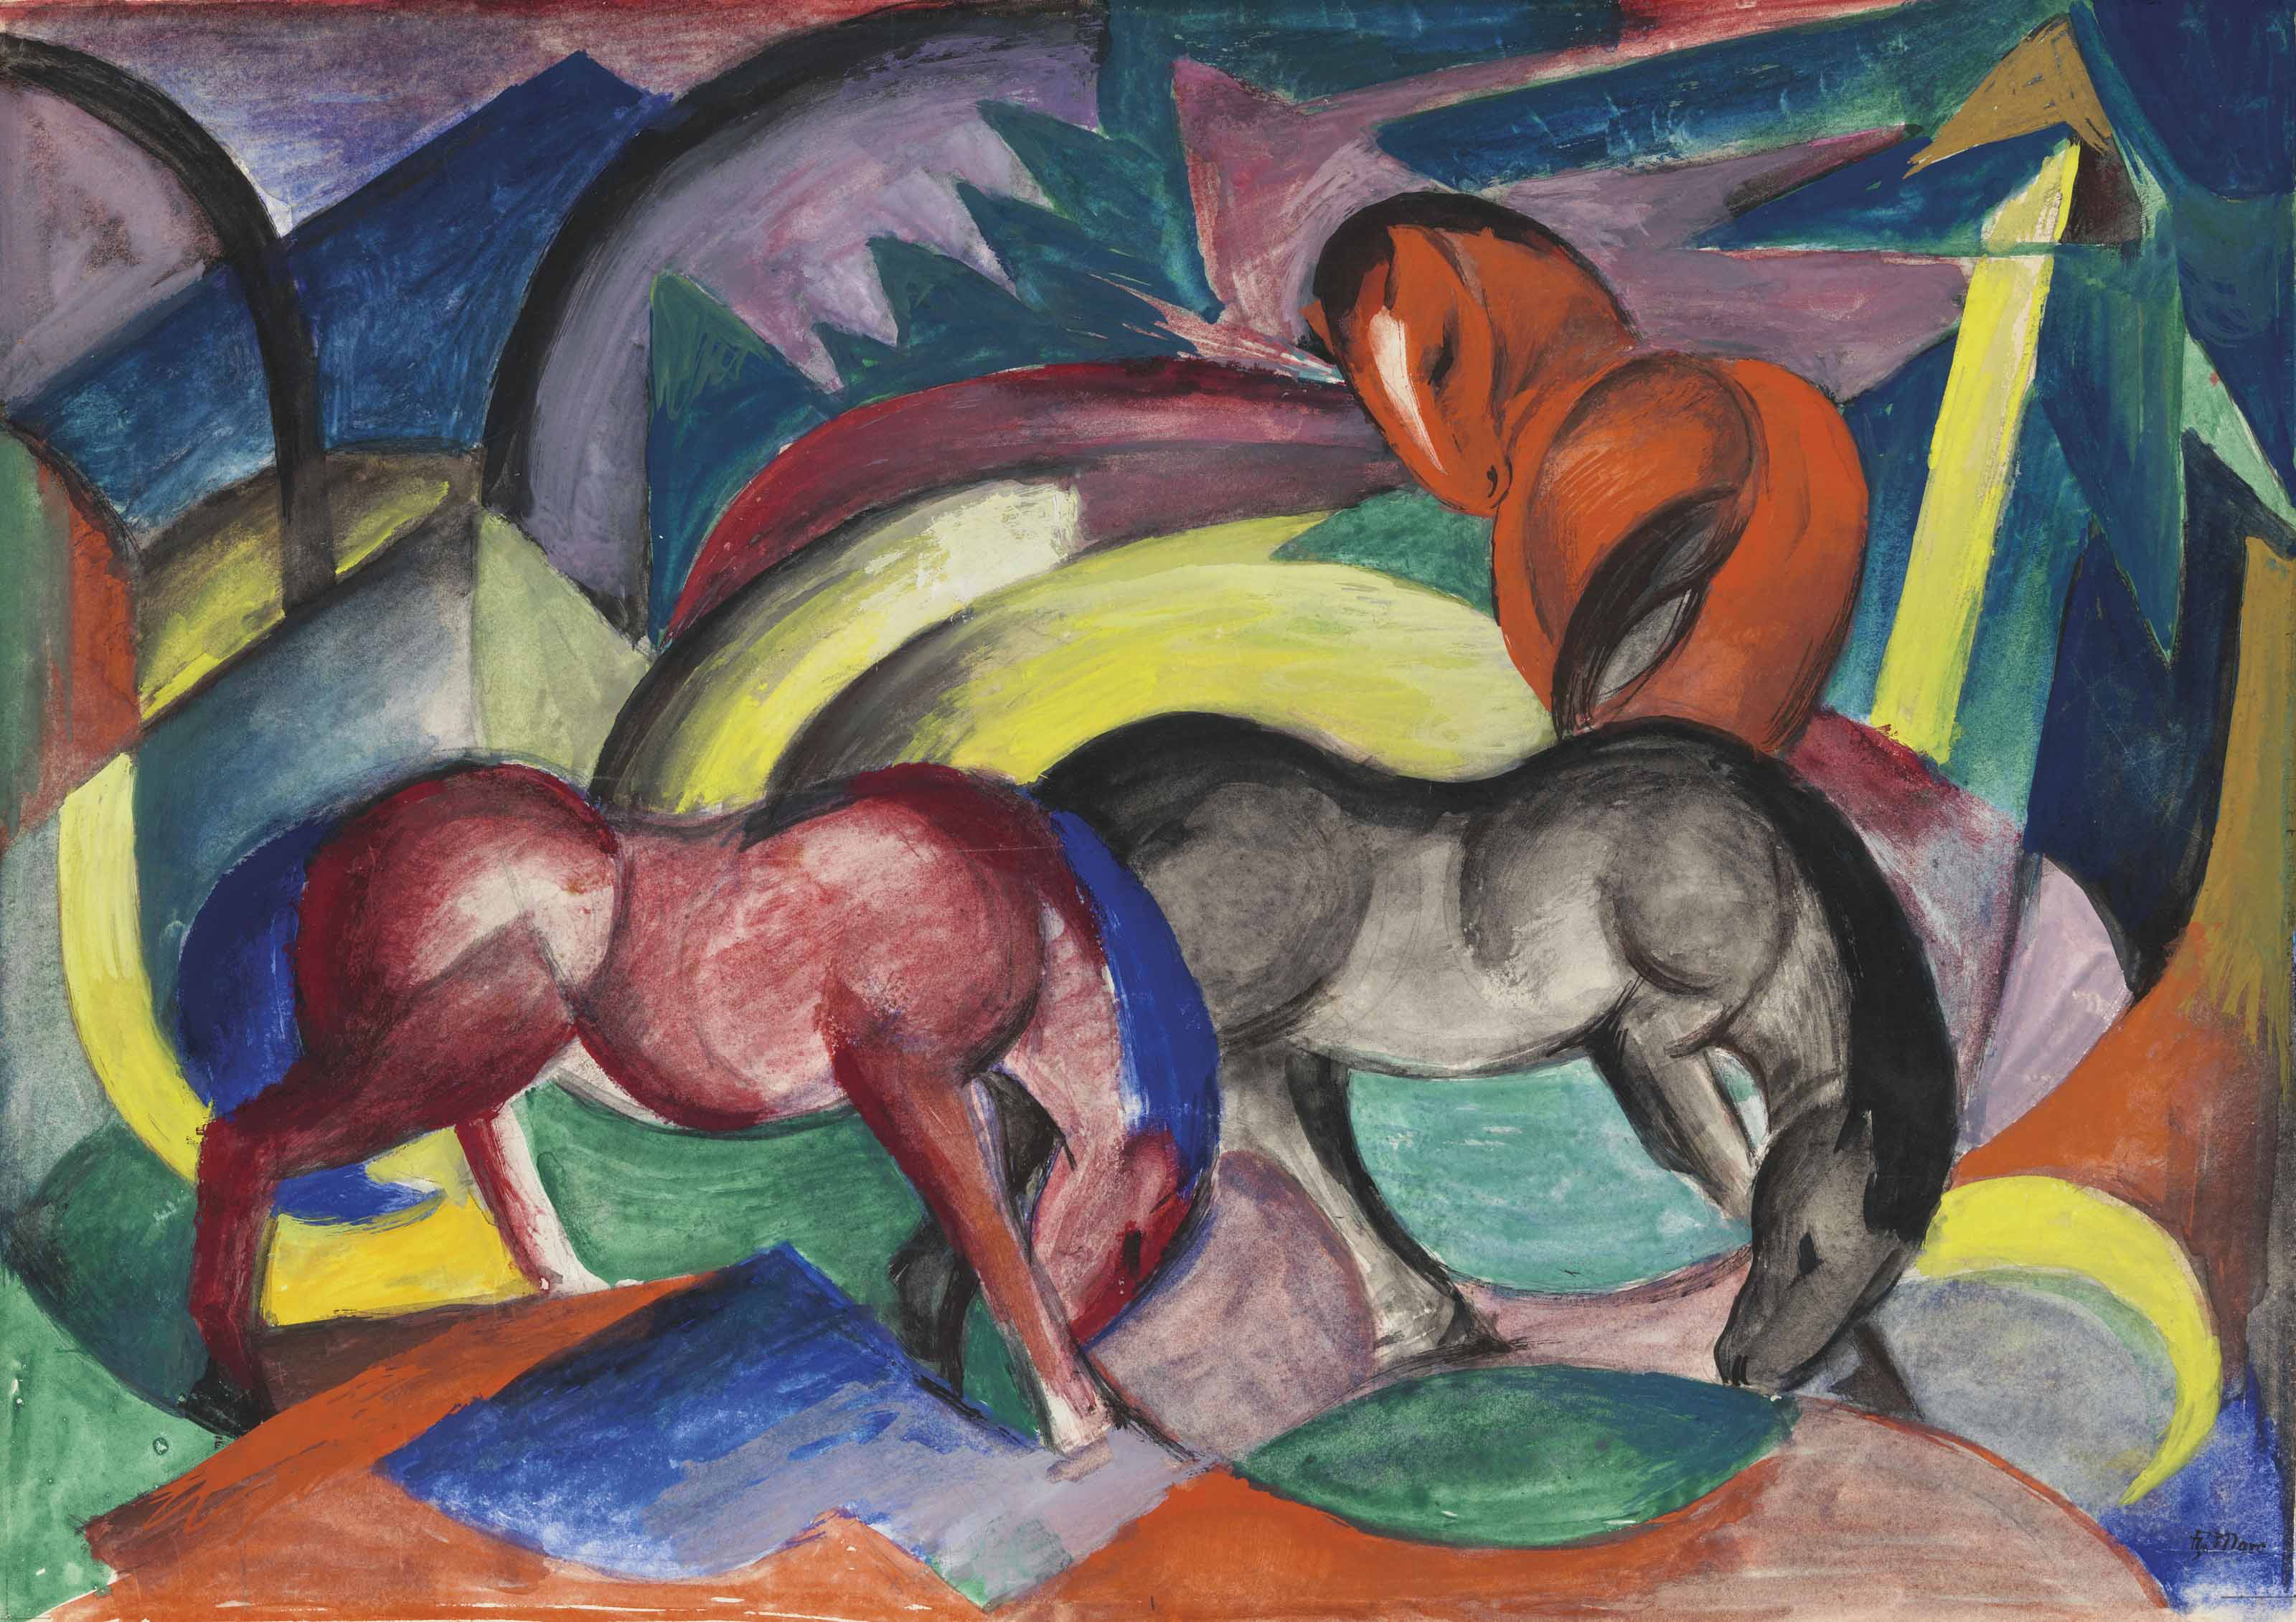 Franz Marc (1880-1916), Drei Pferde, 1912. 13¼ x 18¾  in (33.5 x 47.5  cm). Sold for £15,421,250 on 20 June 2018 at Christie's in London